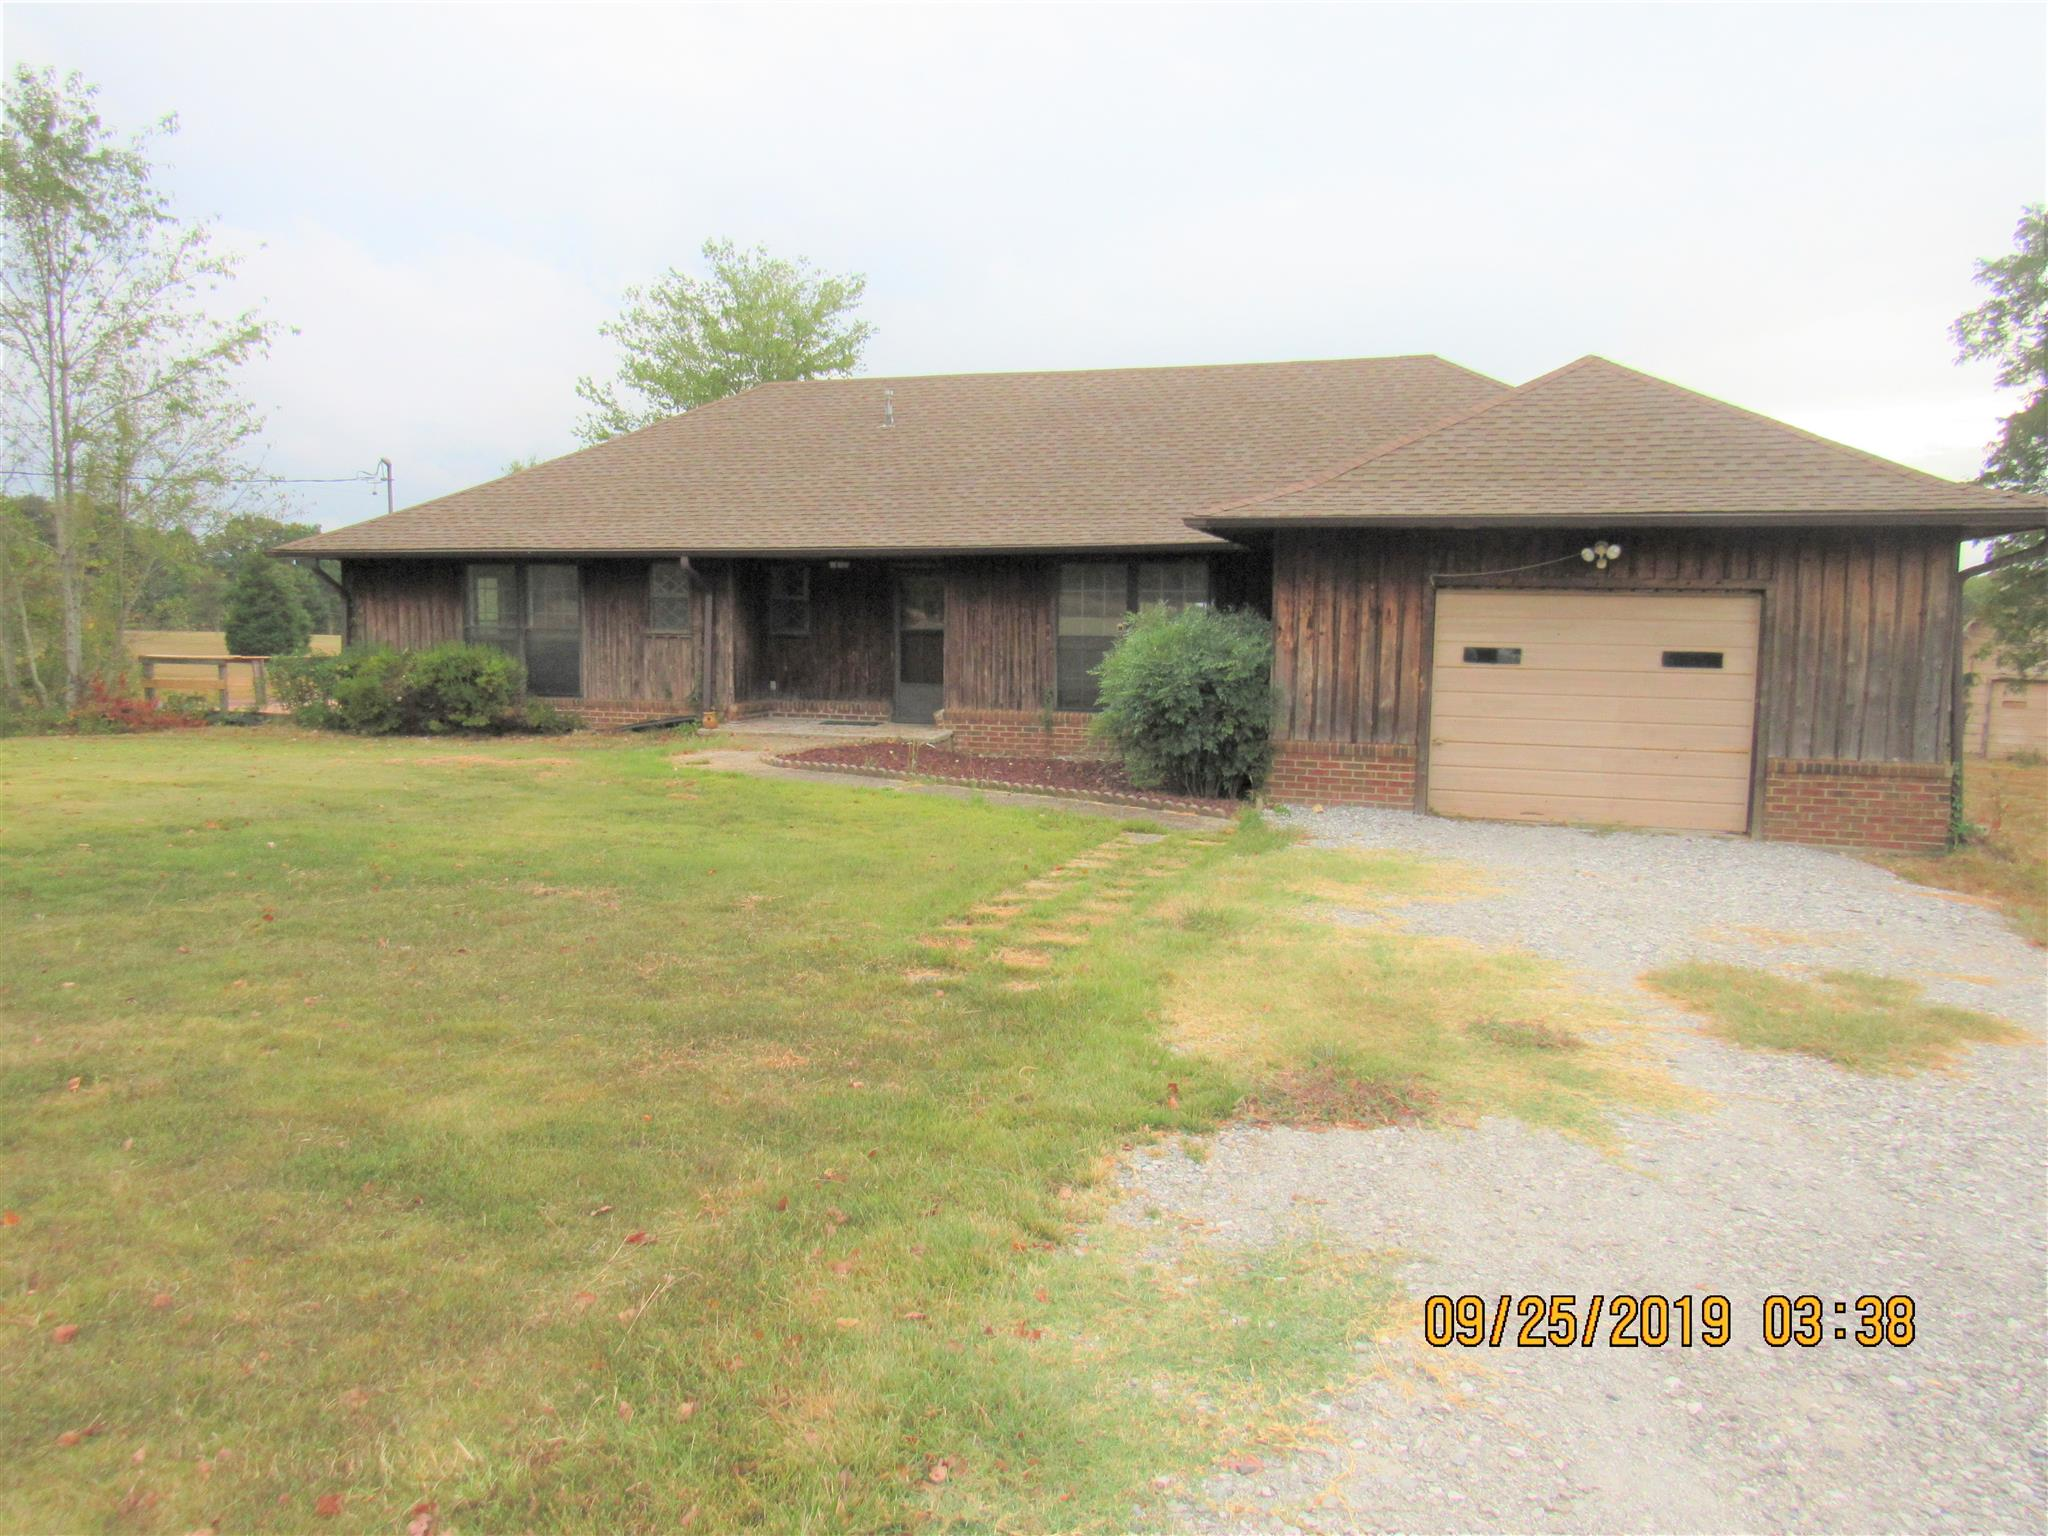 4465 Erin Rd, MC EWEN, TN 37101 - MC EWEN, TN real estate listing